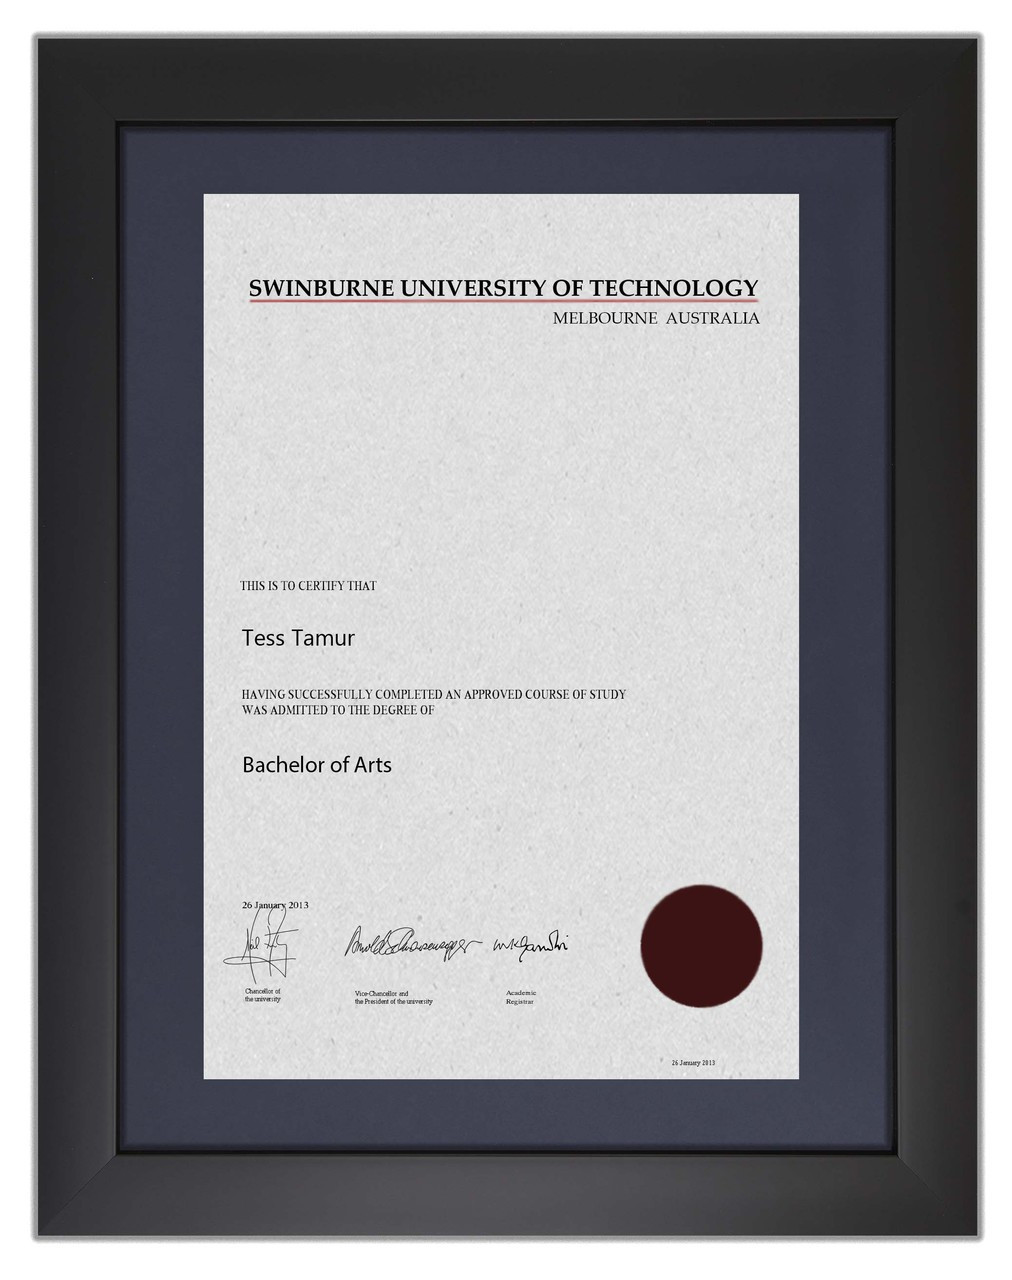 Degree Certificate Frame For Swinburne University Of Technology